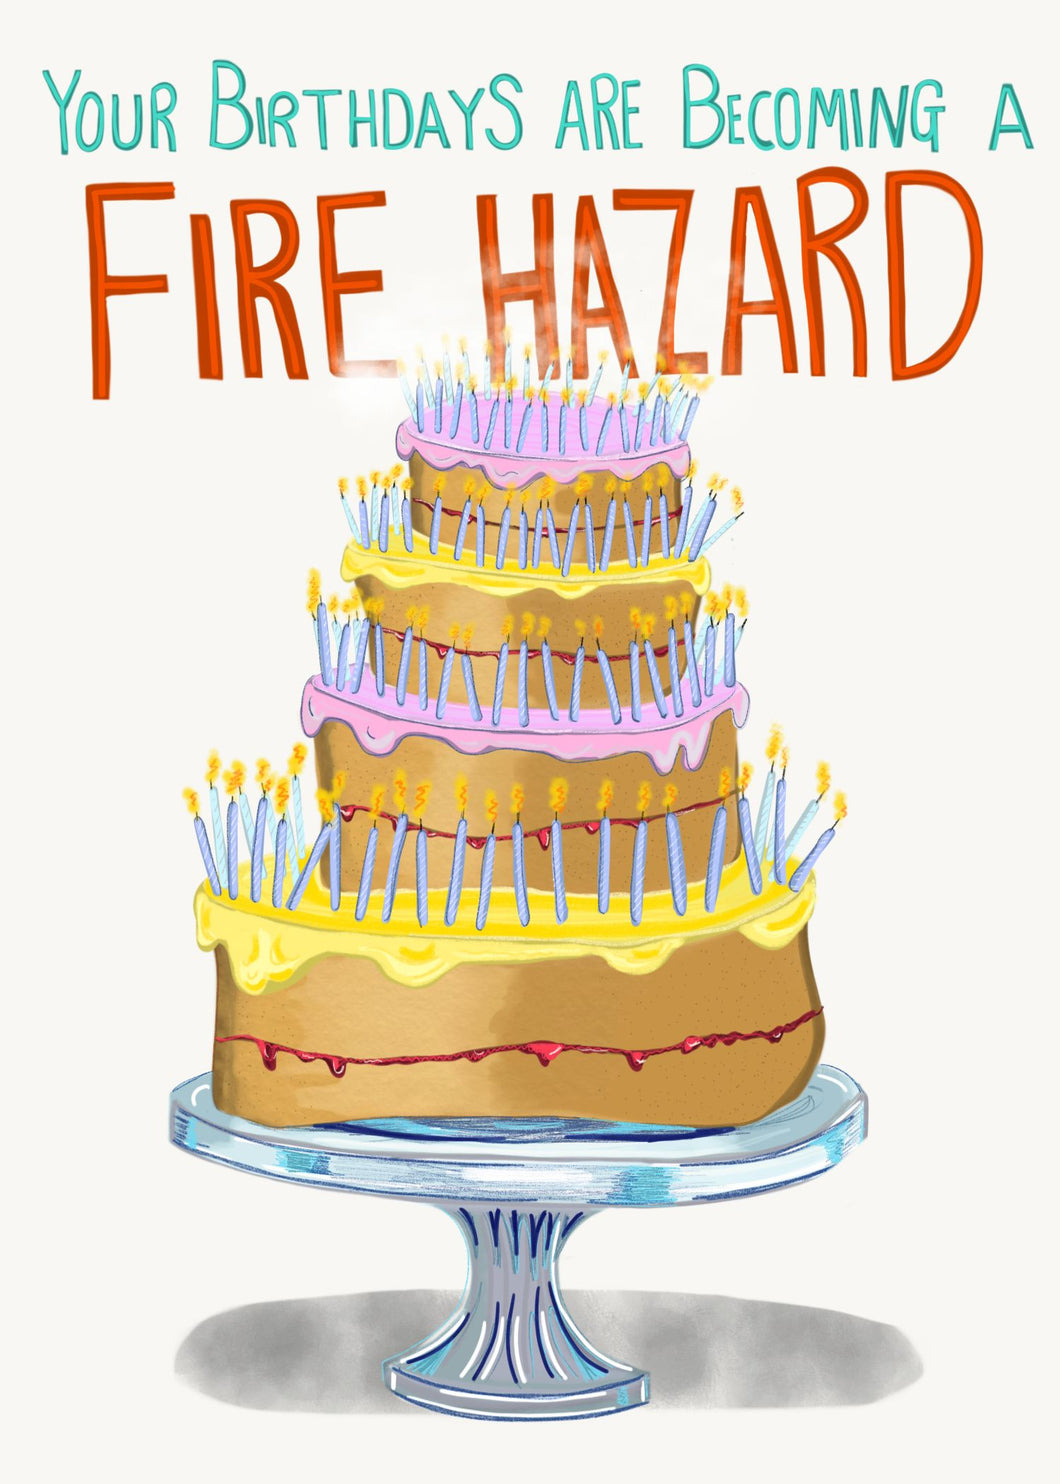 Fire Hazard card